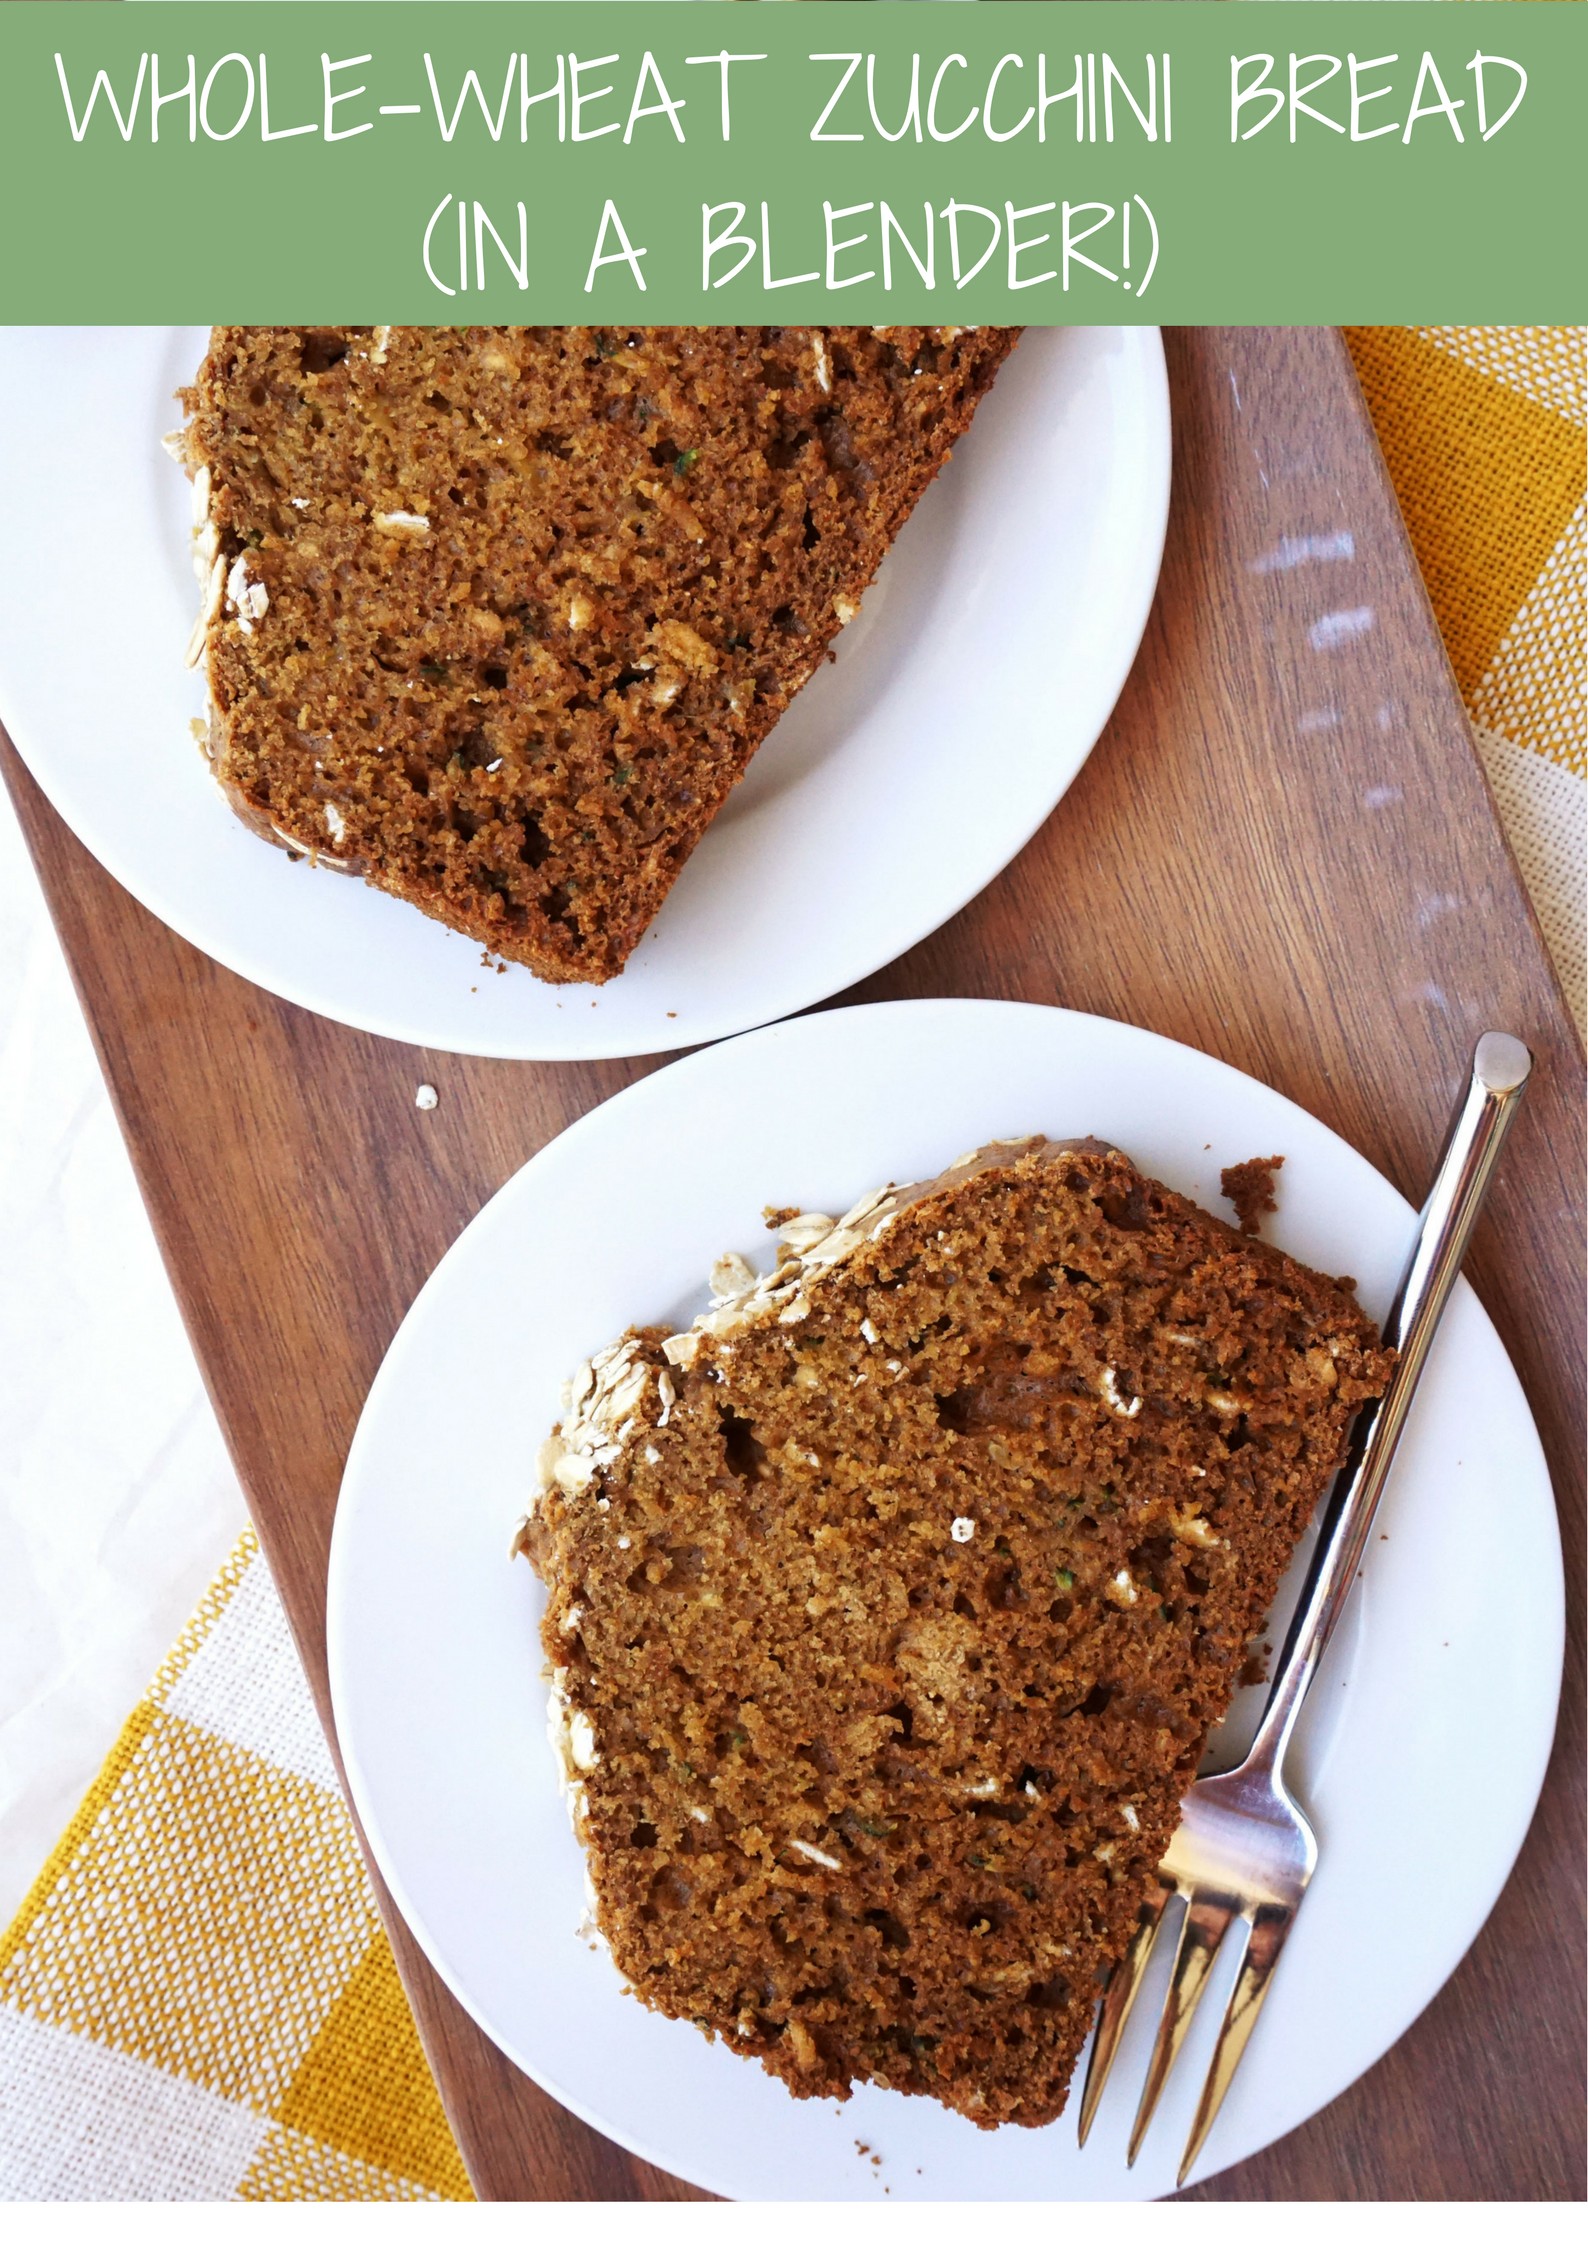 Whole-Wheat Zucchini Bread (in a blender!)